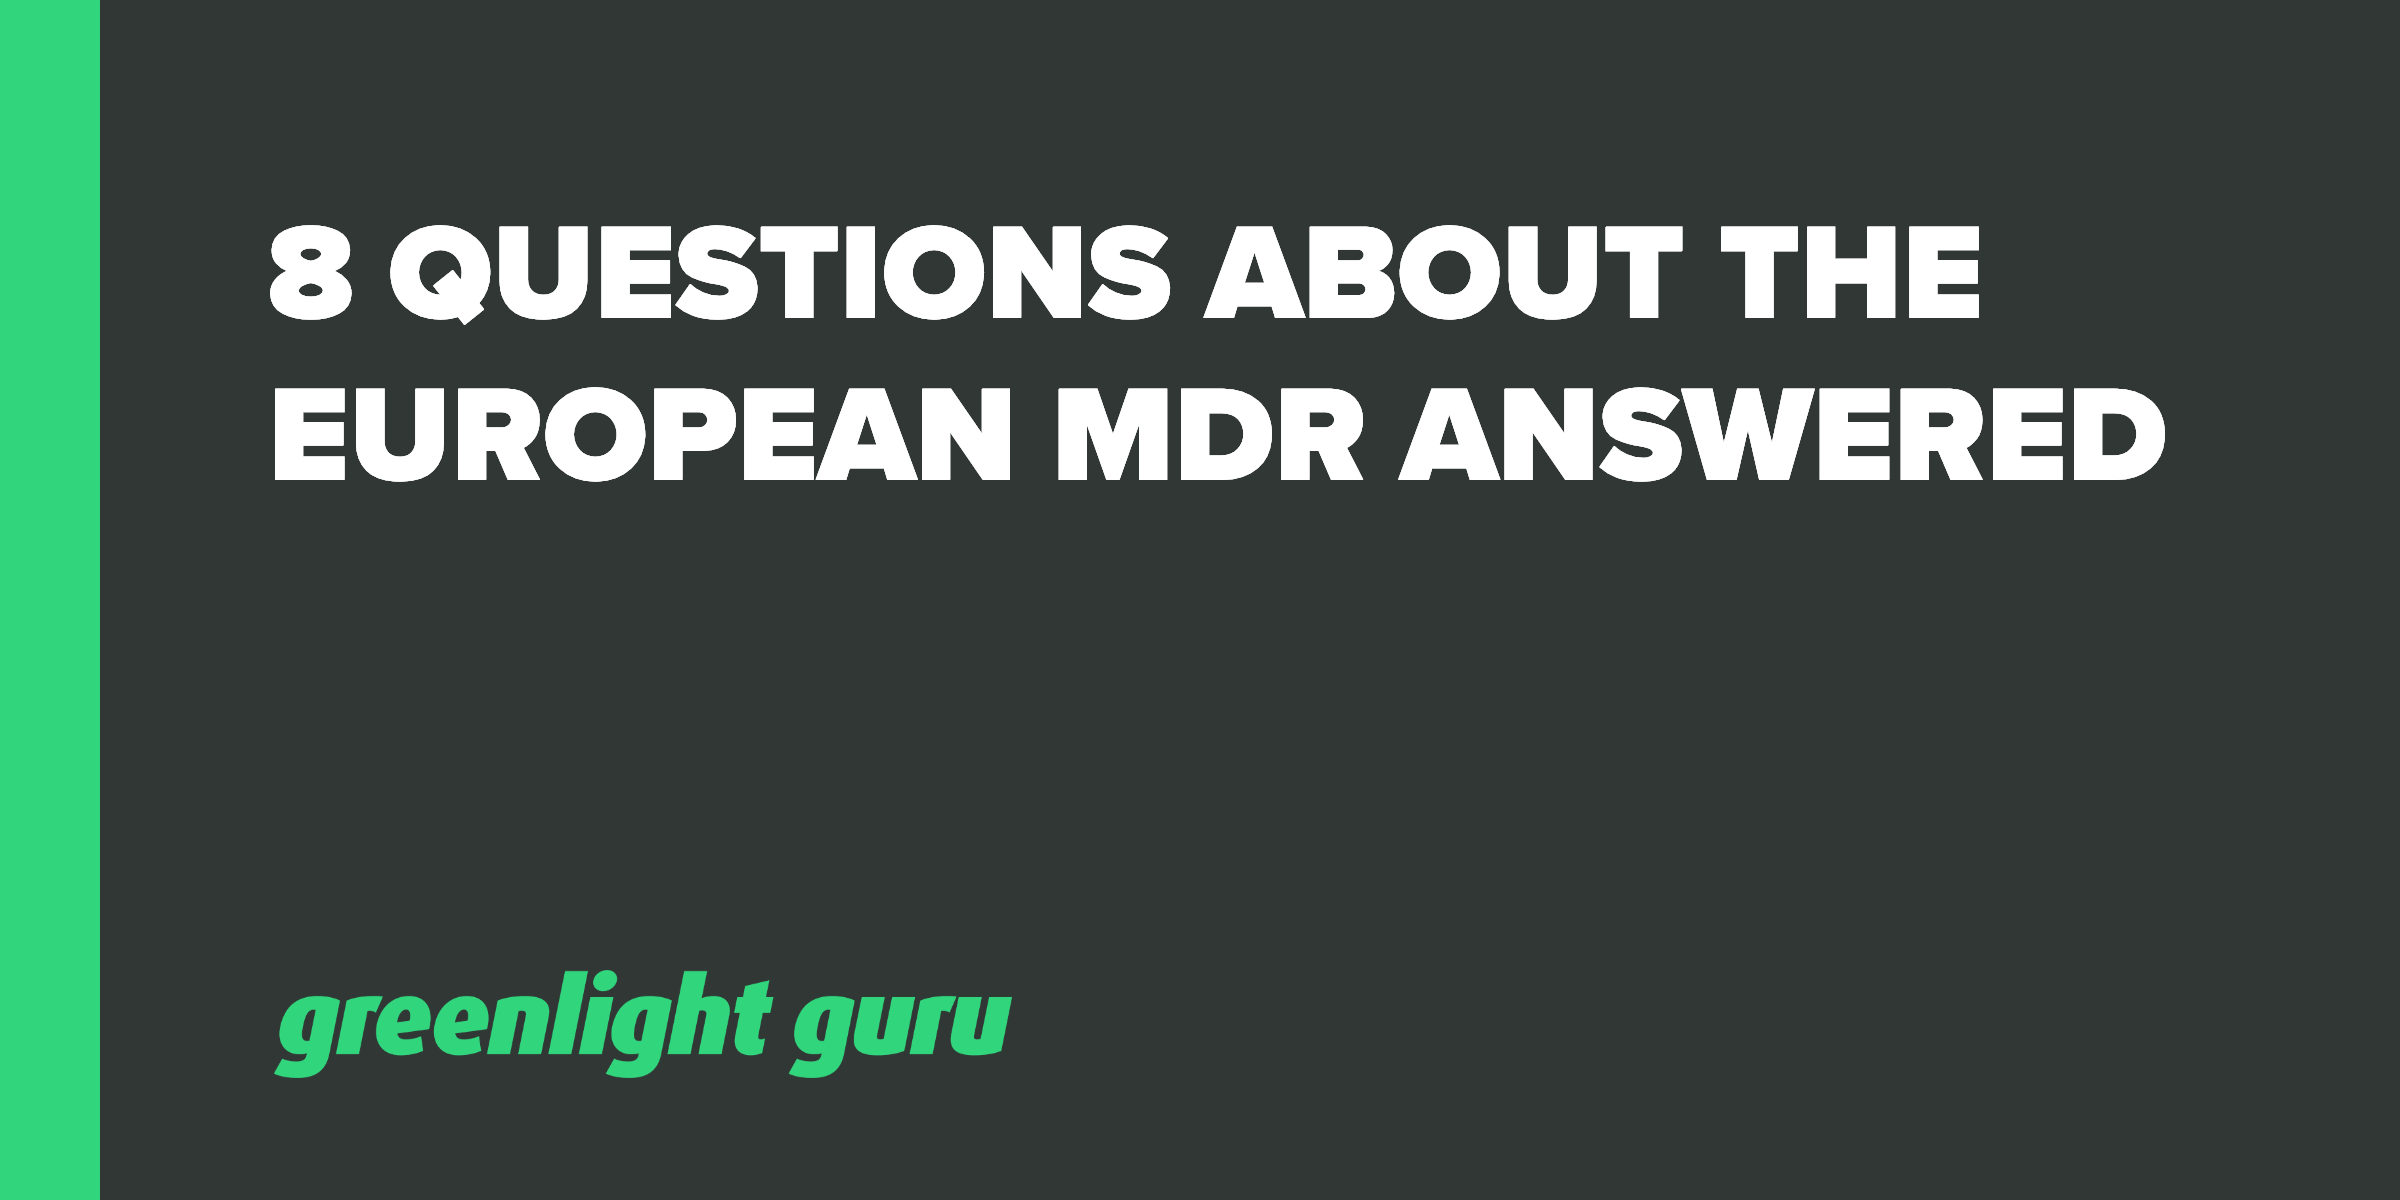 8 questions about the eu mdr answered